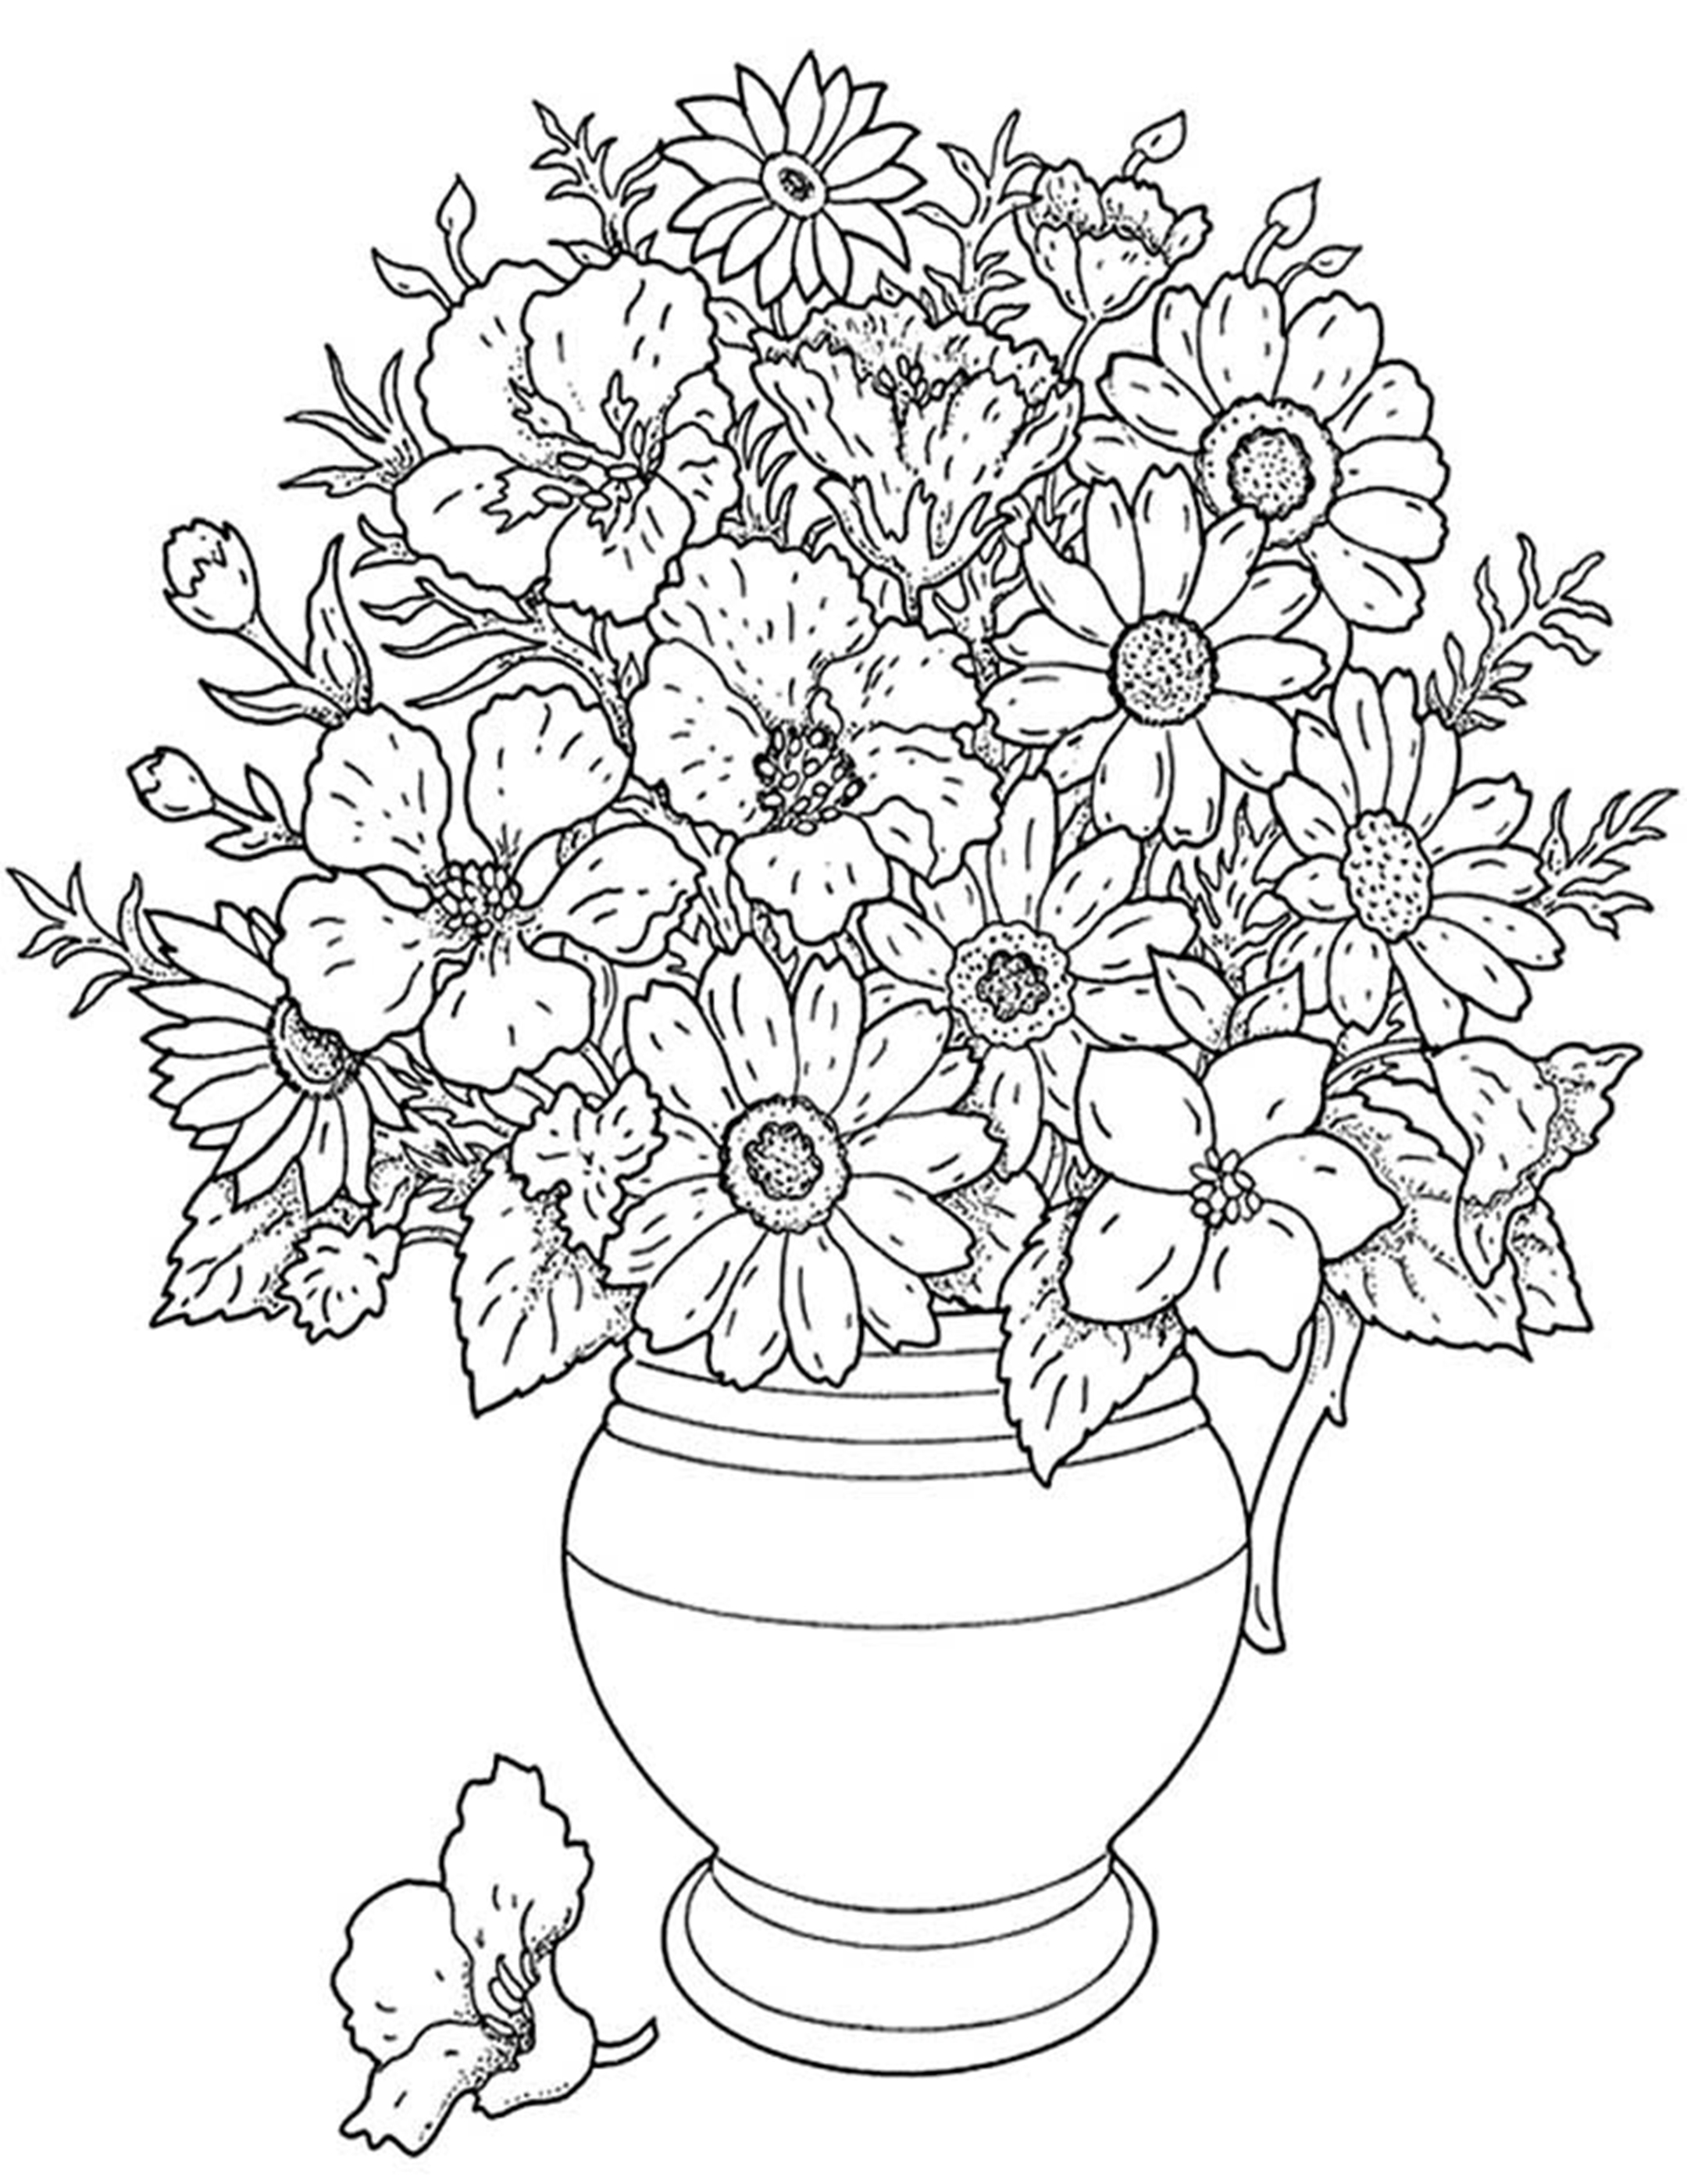 coloring sheets of flowers free printable flower coloring pages for kids best of sheets coloring flowers 1 1